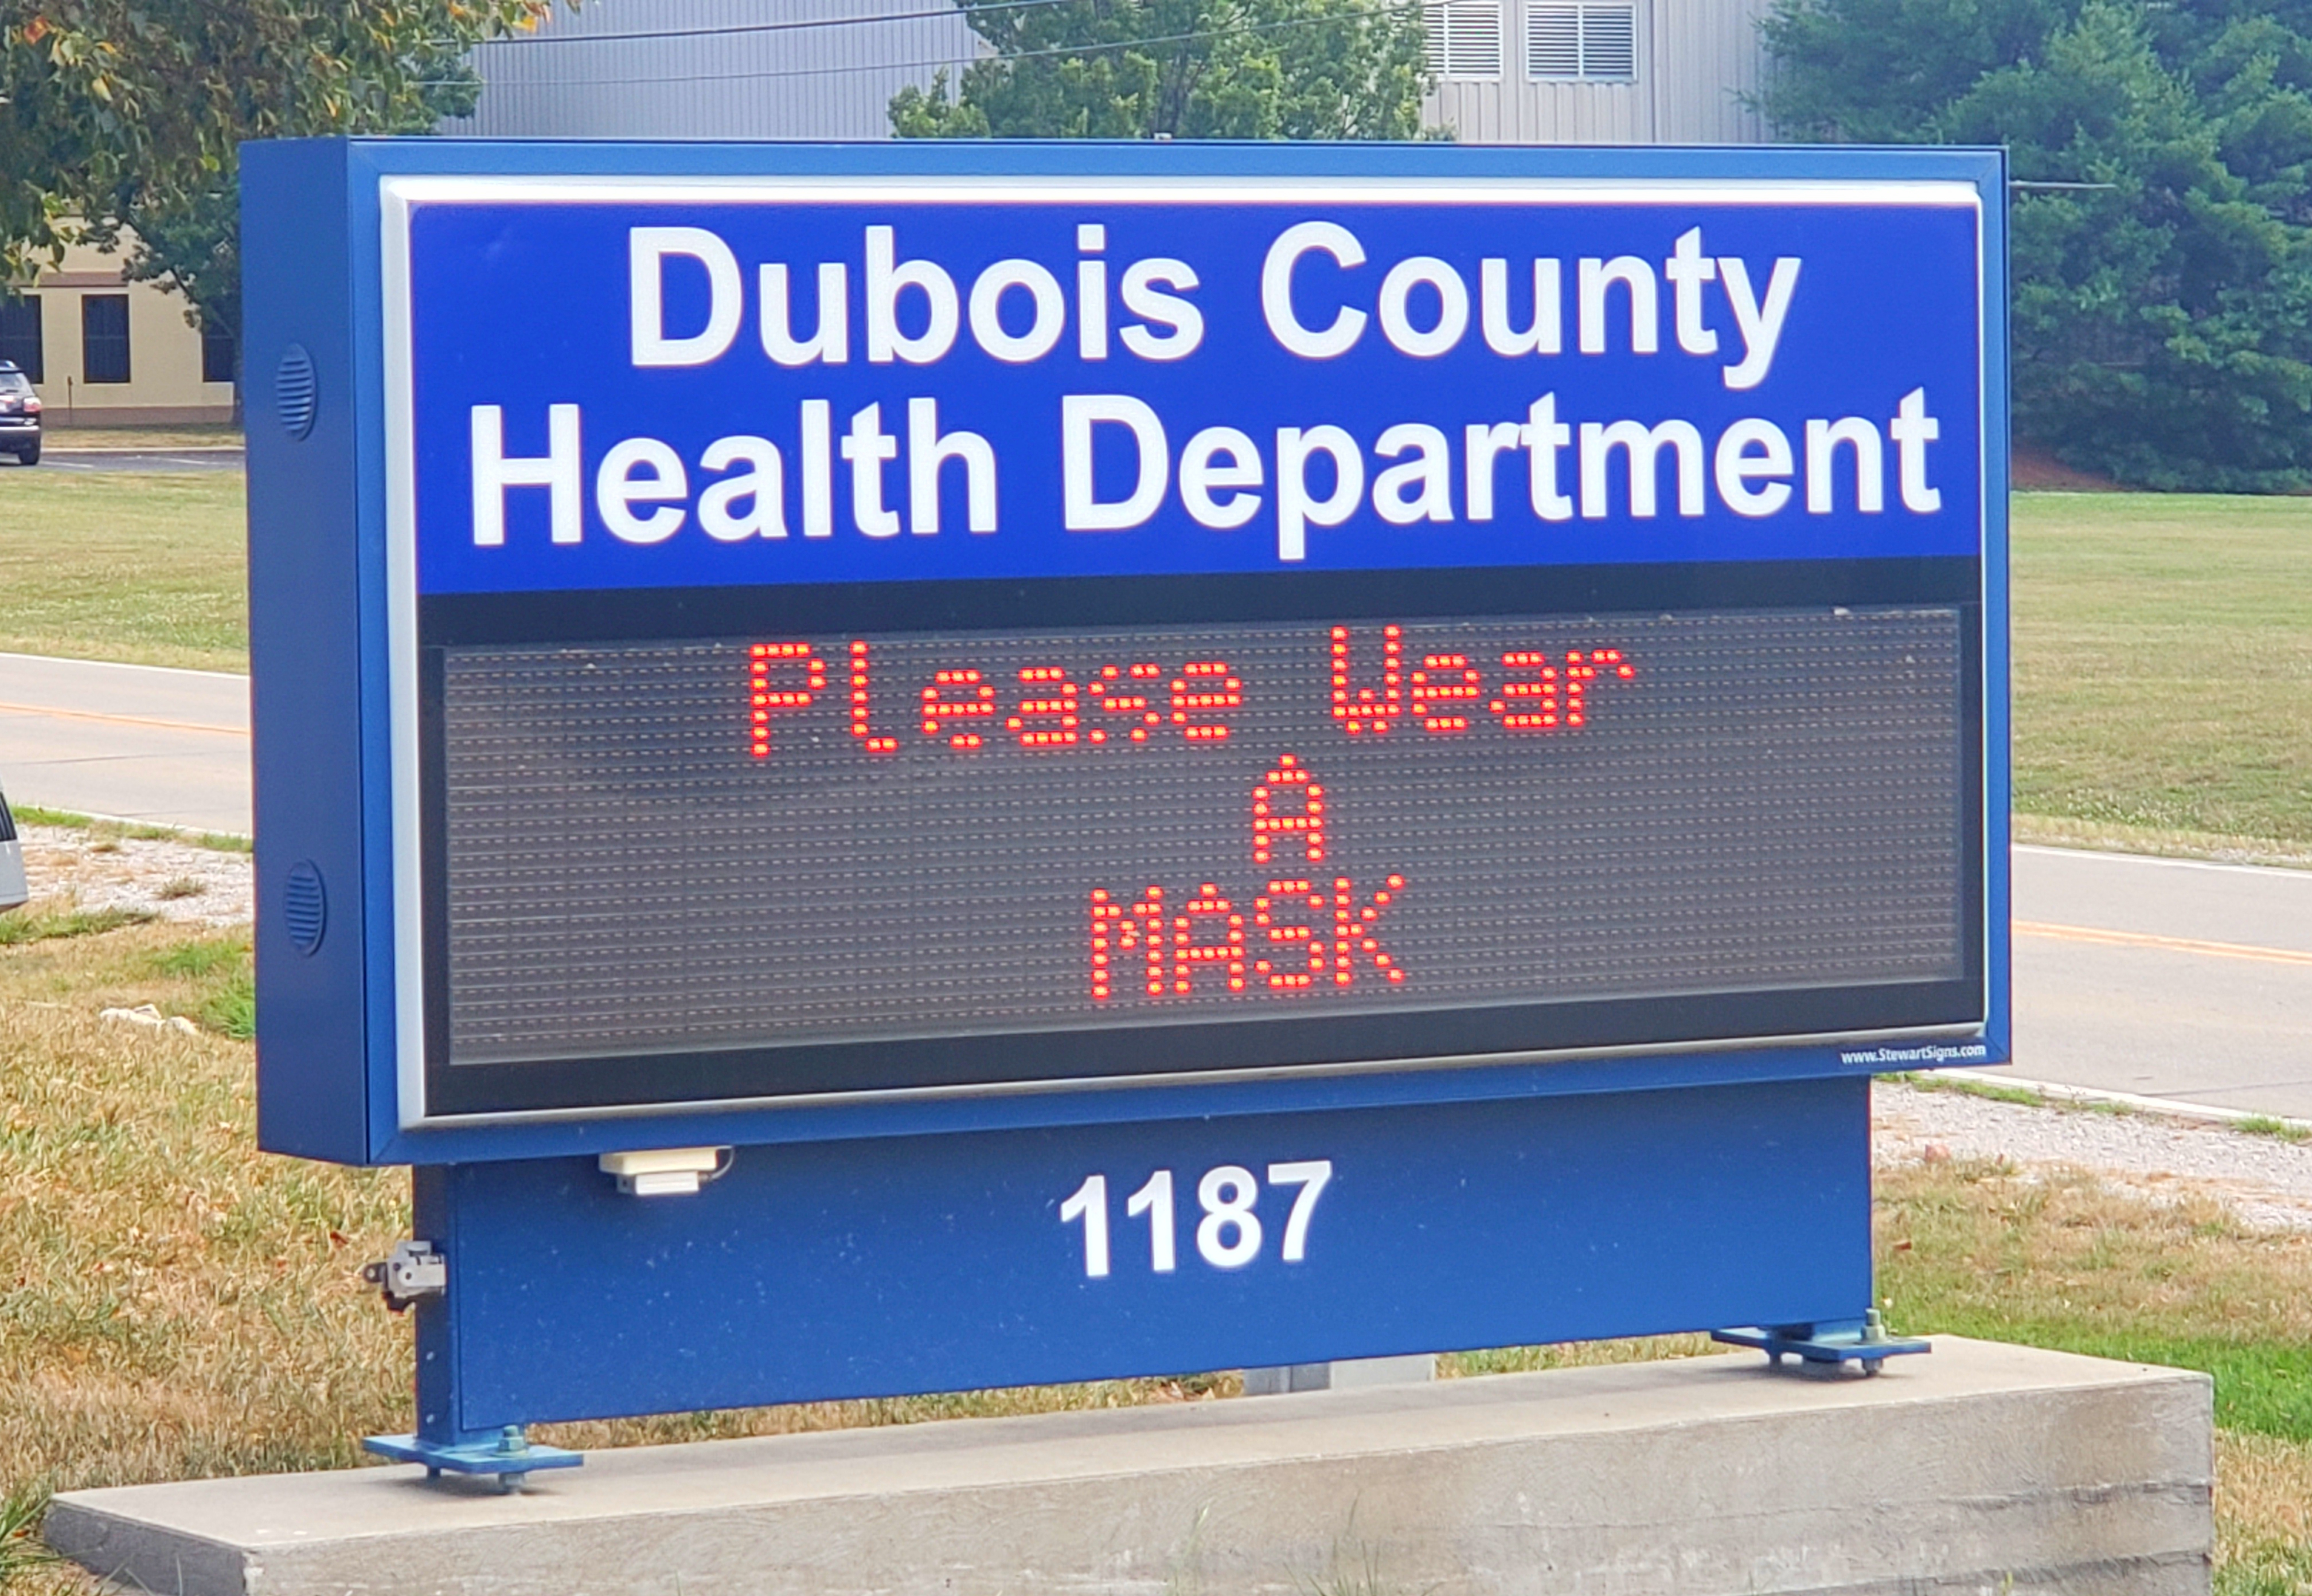 Dubois County Officials Report 11 New Cases of COVID-19 on Friday